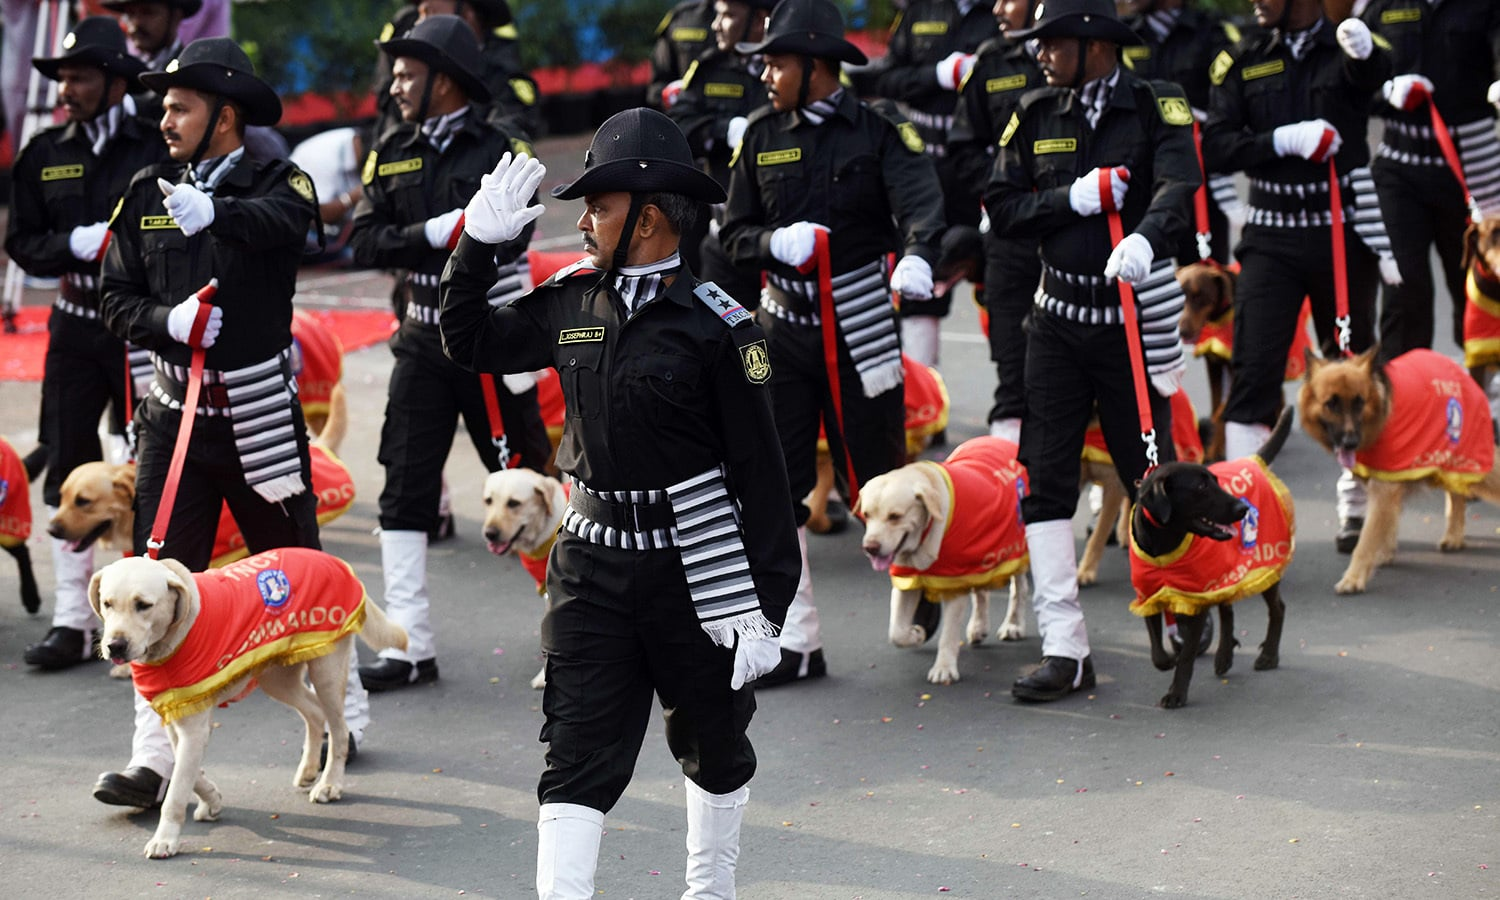 Indian police personnel and police dogs march in a parade to mark Republic Day in Chennai.— AFP